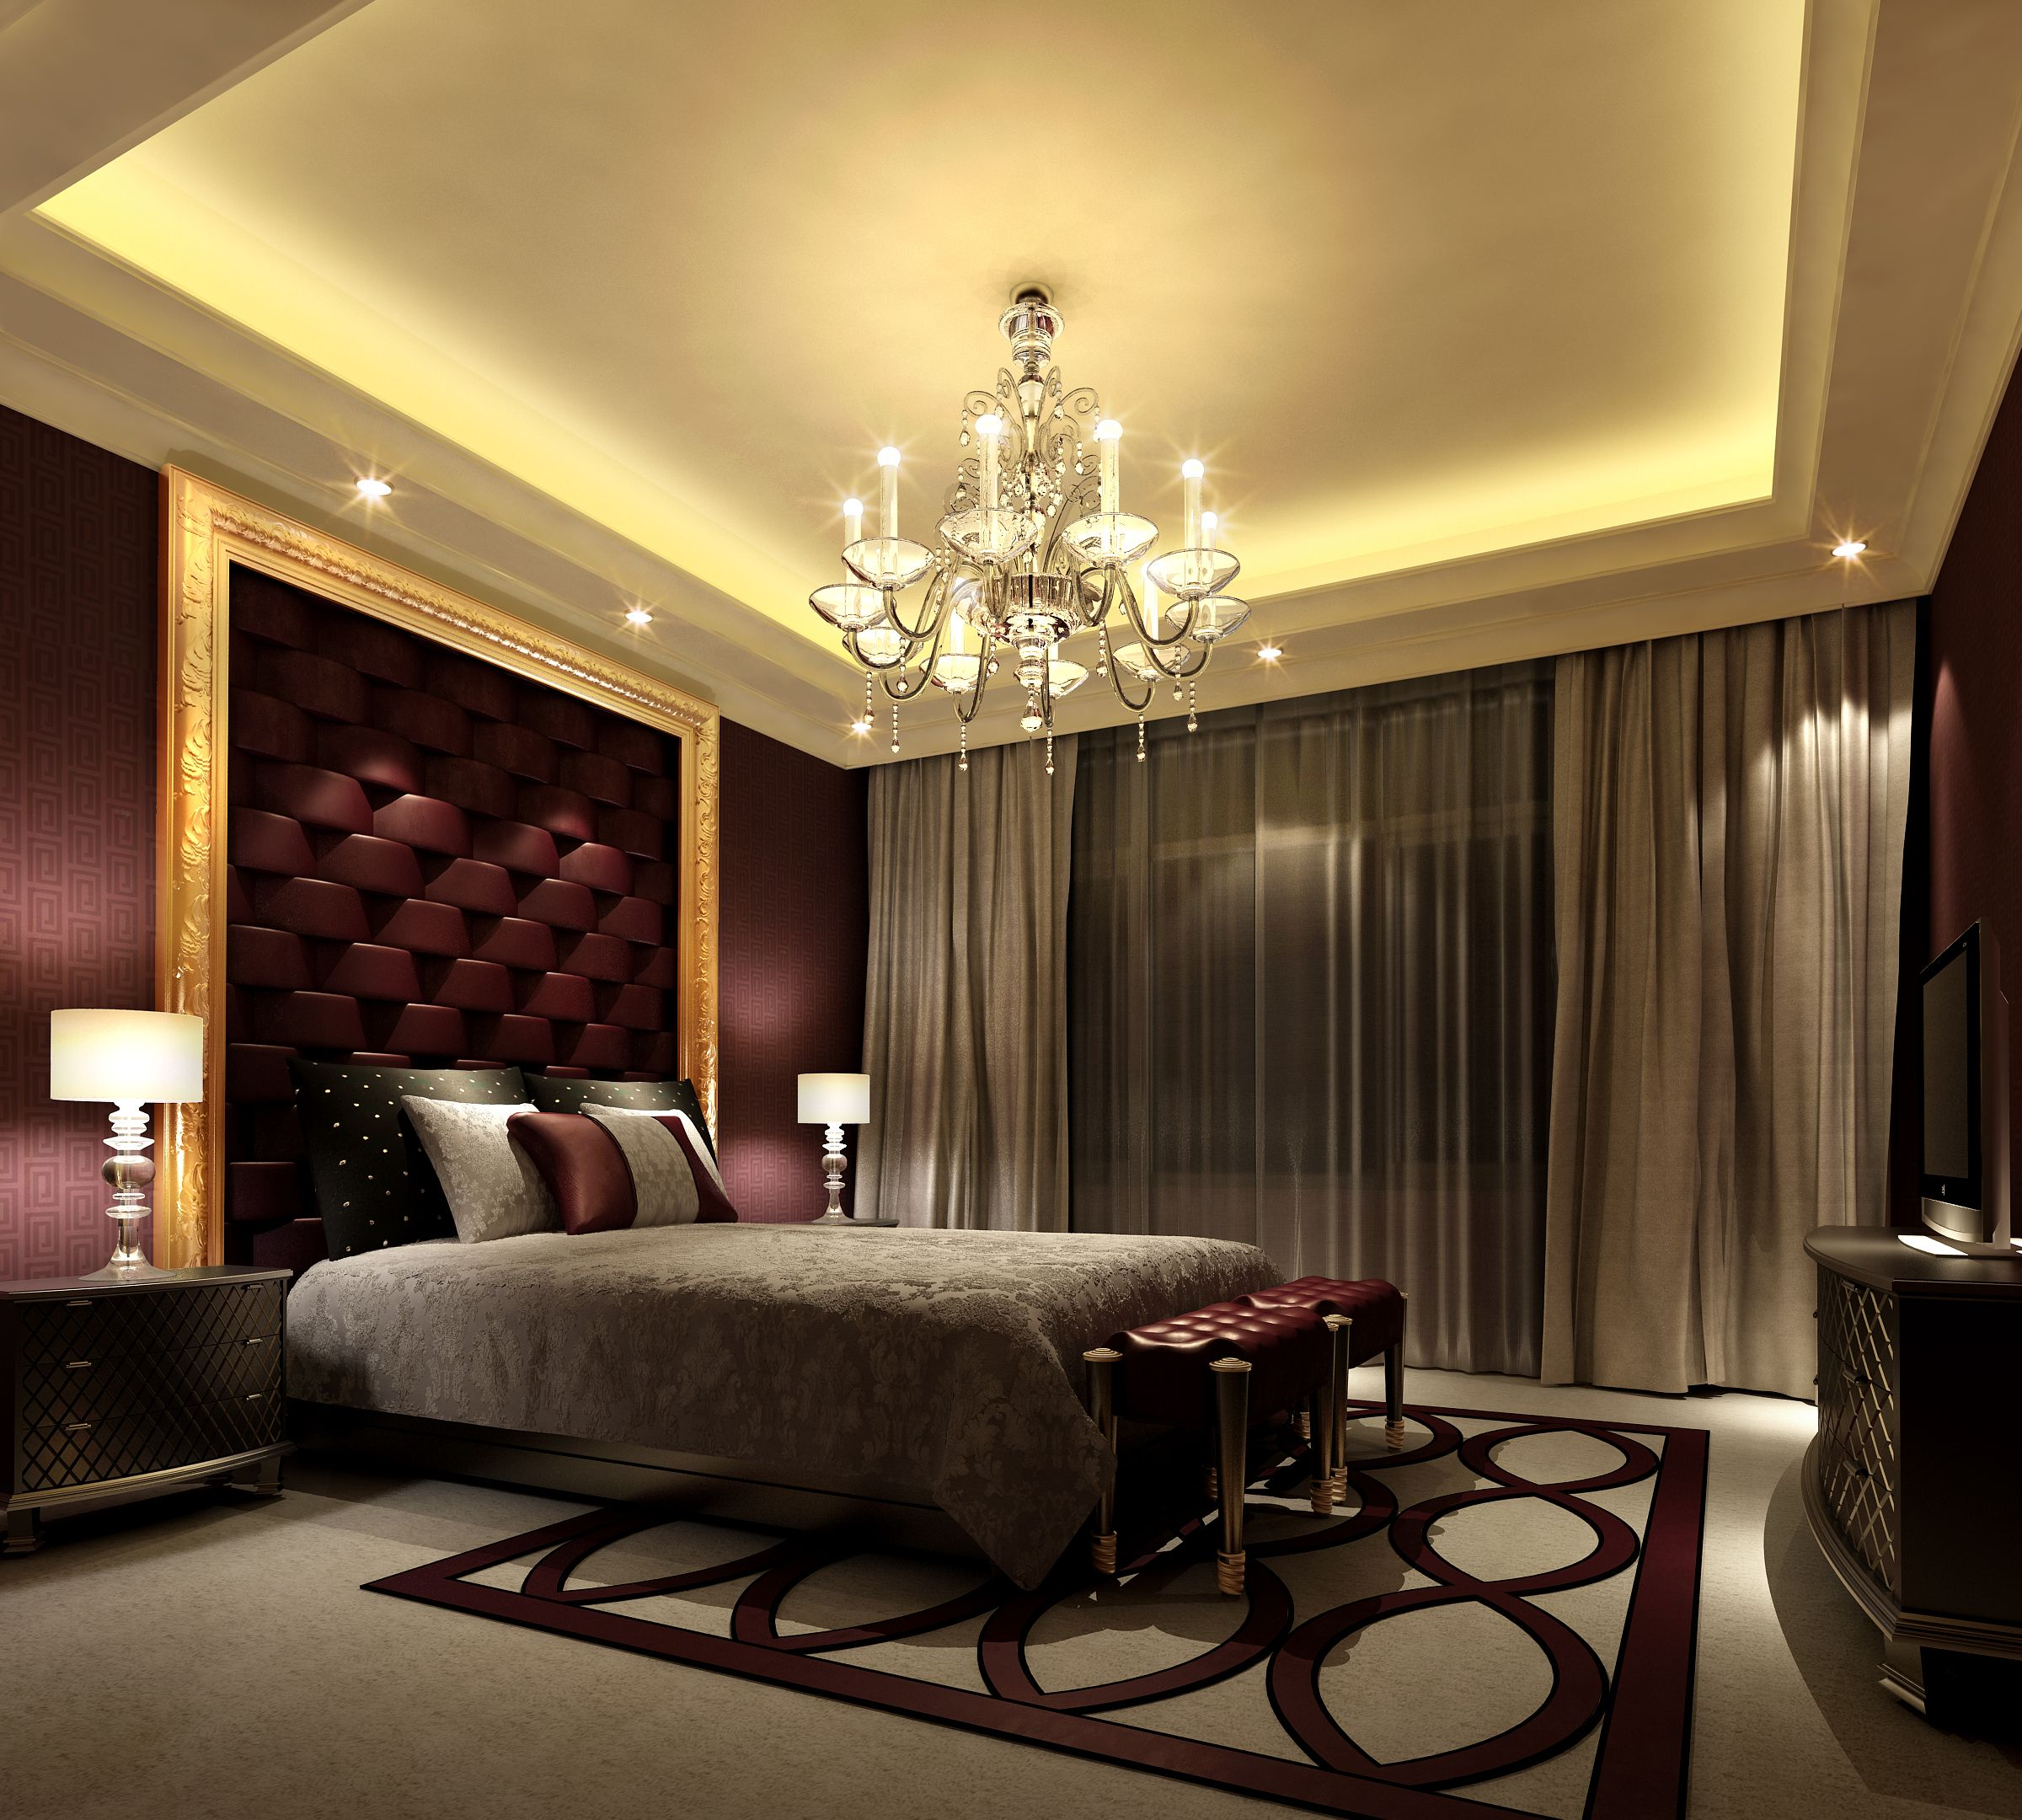 Elegant Bedroom Idea Comfortable Mood 4780 Modern Home Designs Elegant Bedrooms Interiordaily